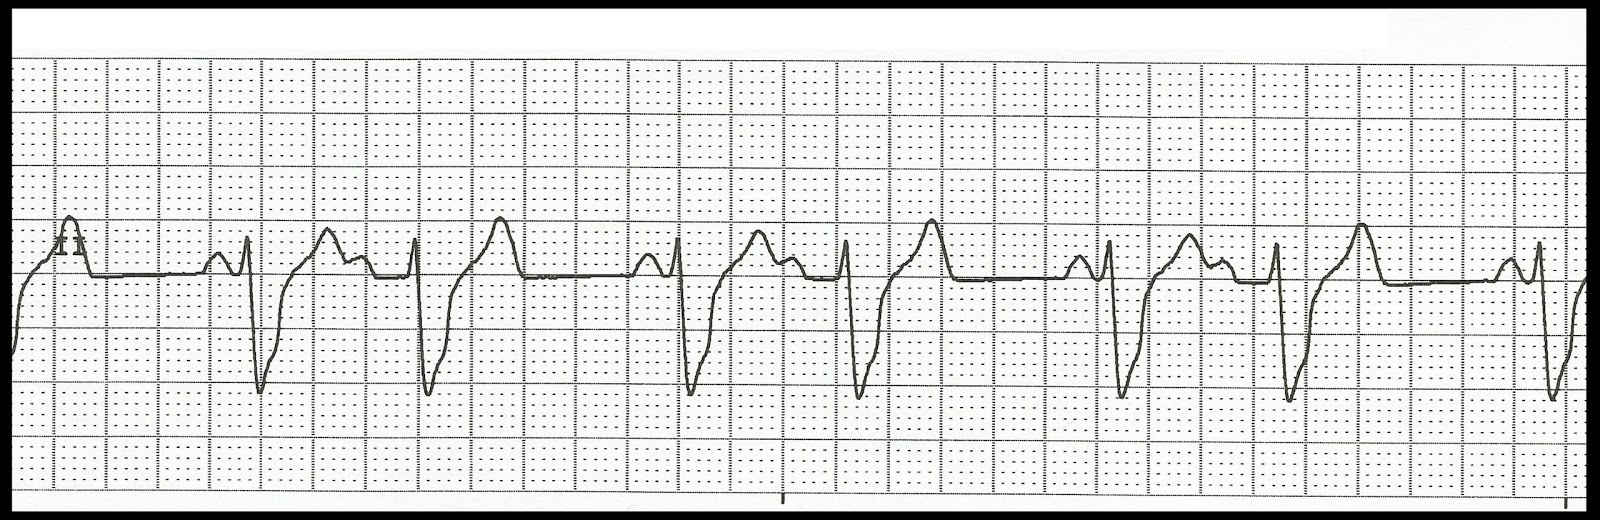 ekg rhythm strips of heart block Handle Violence